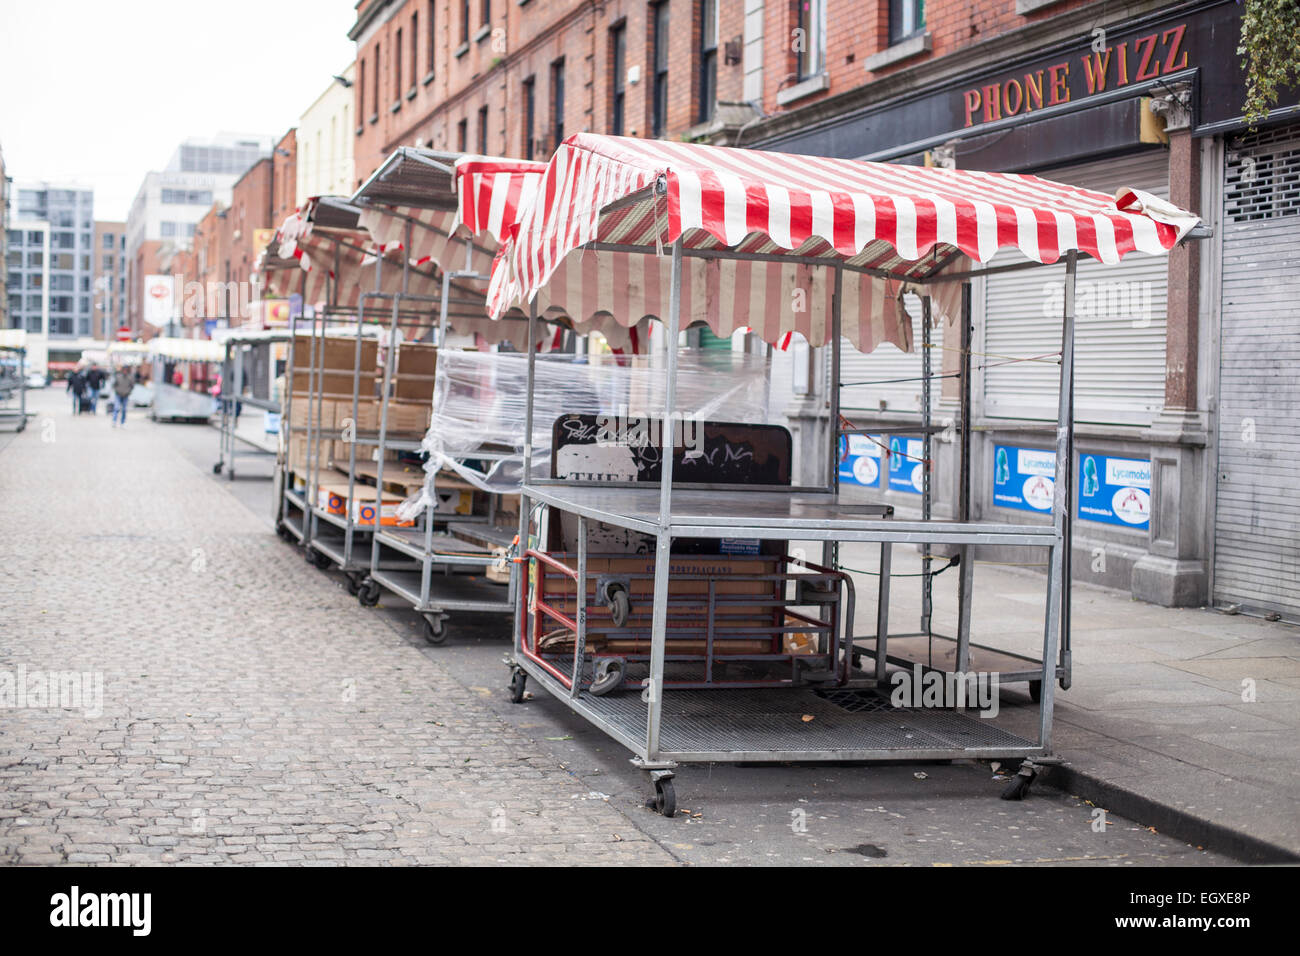 Stalls being set up on Dublin's Moore street on a Sunday Morning, Vintage tones - Stock Image